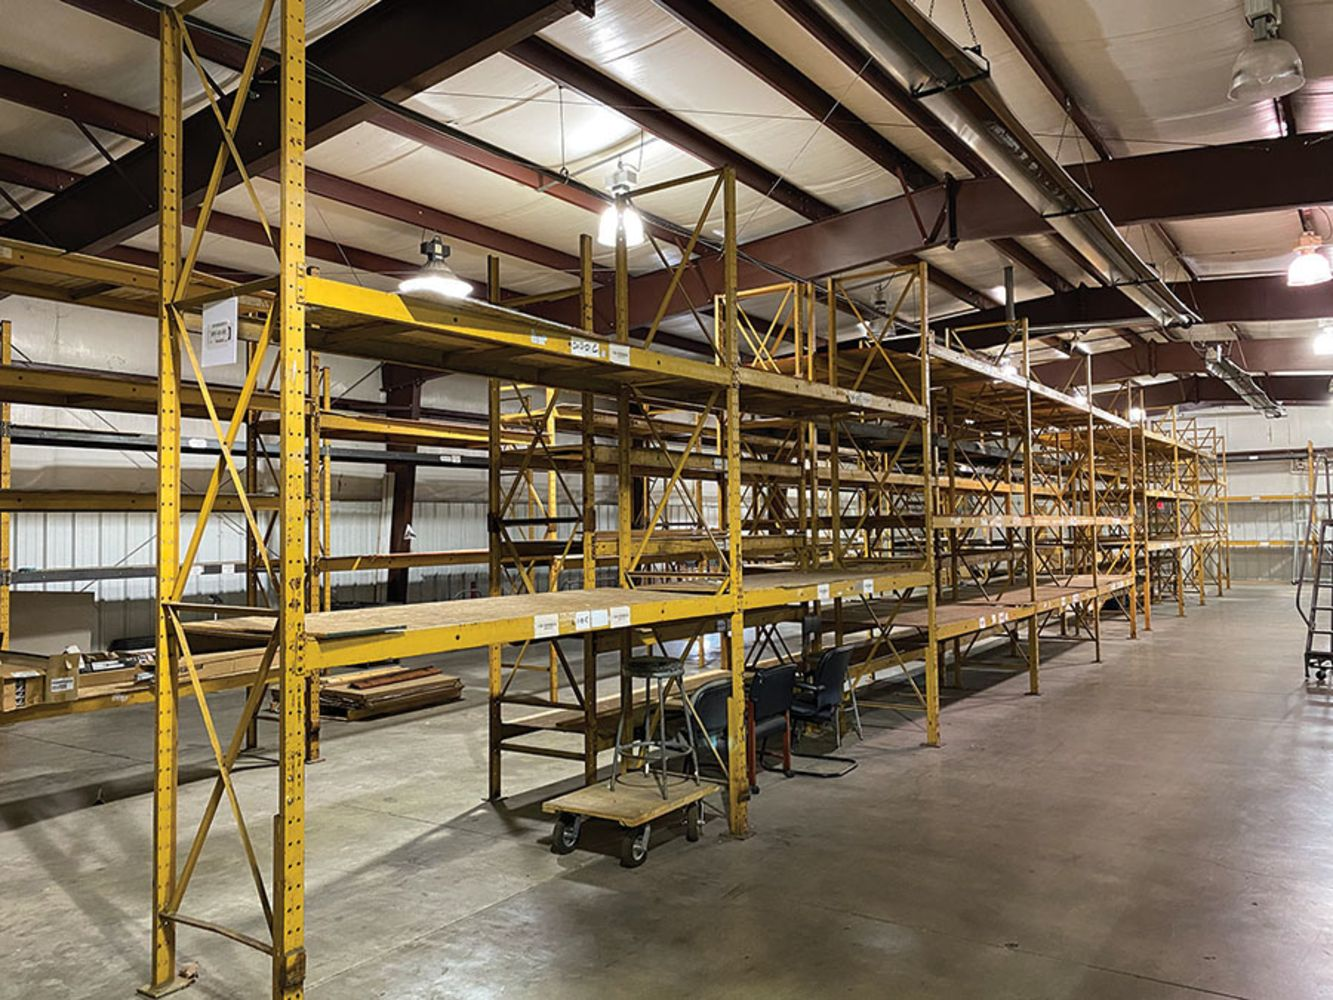 former assets of DIESEL ENGINE PARTS DISTRIBUTION FACILITY - Forklifts, Material Handling, Pallet Racking & Warehouse Equipment